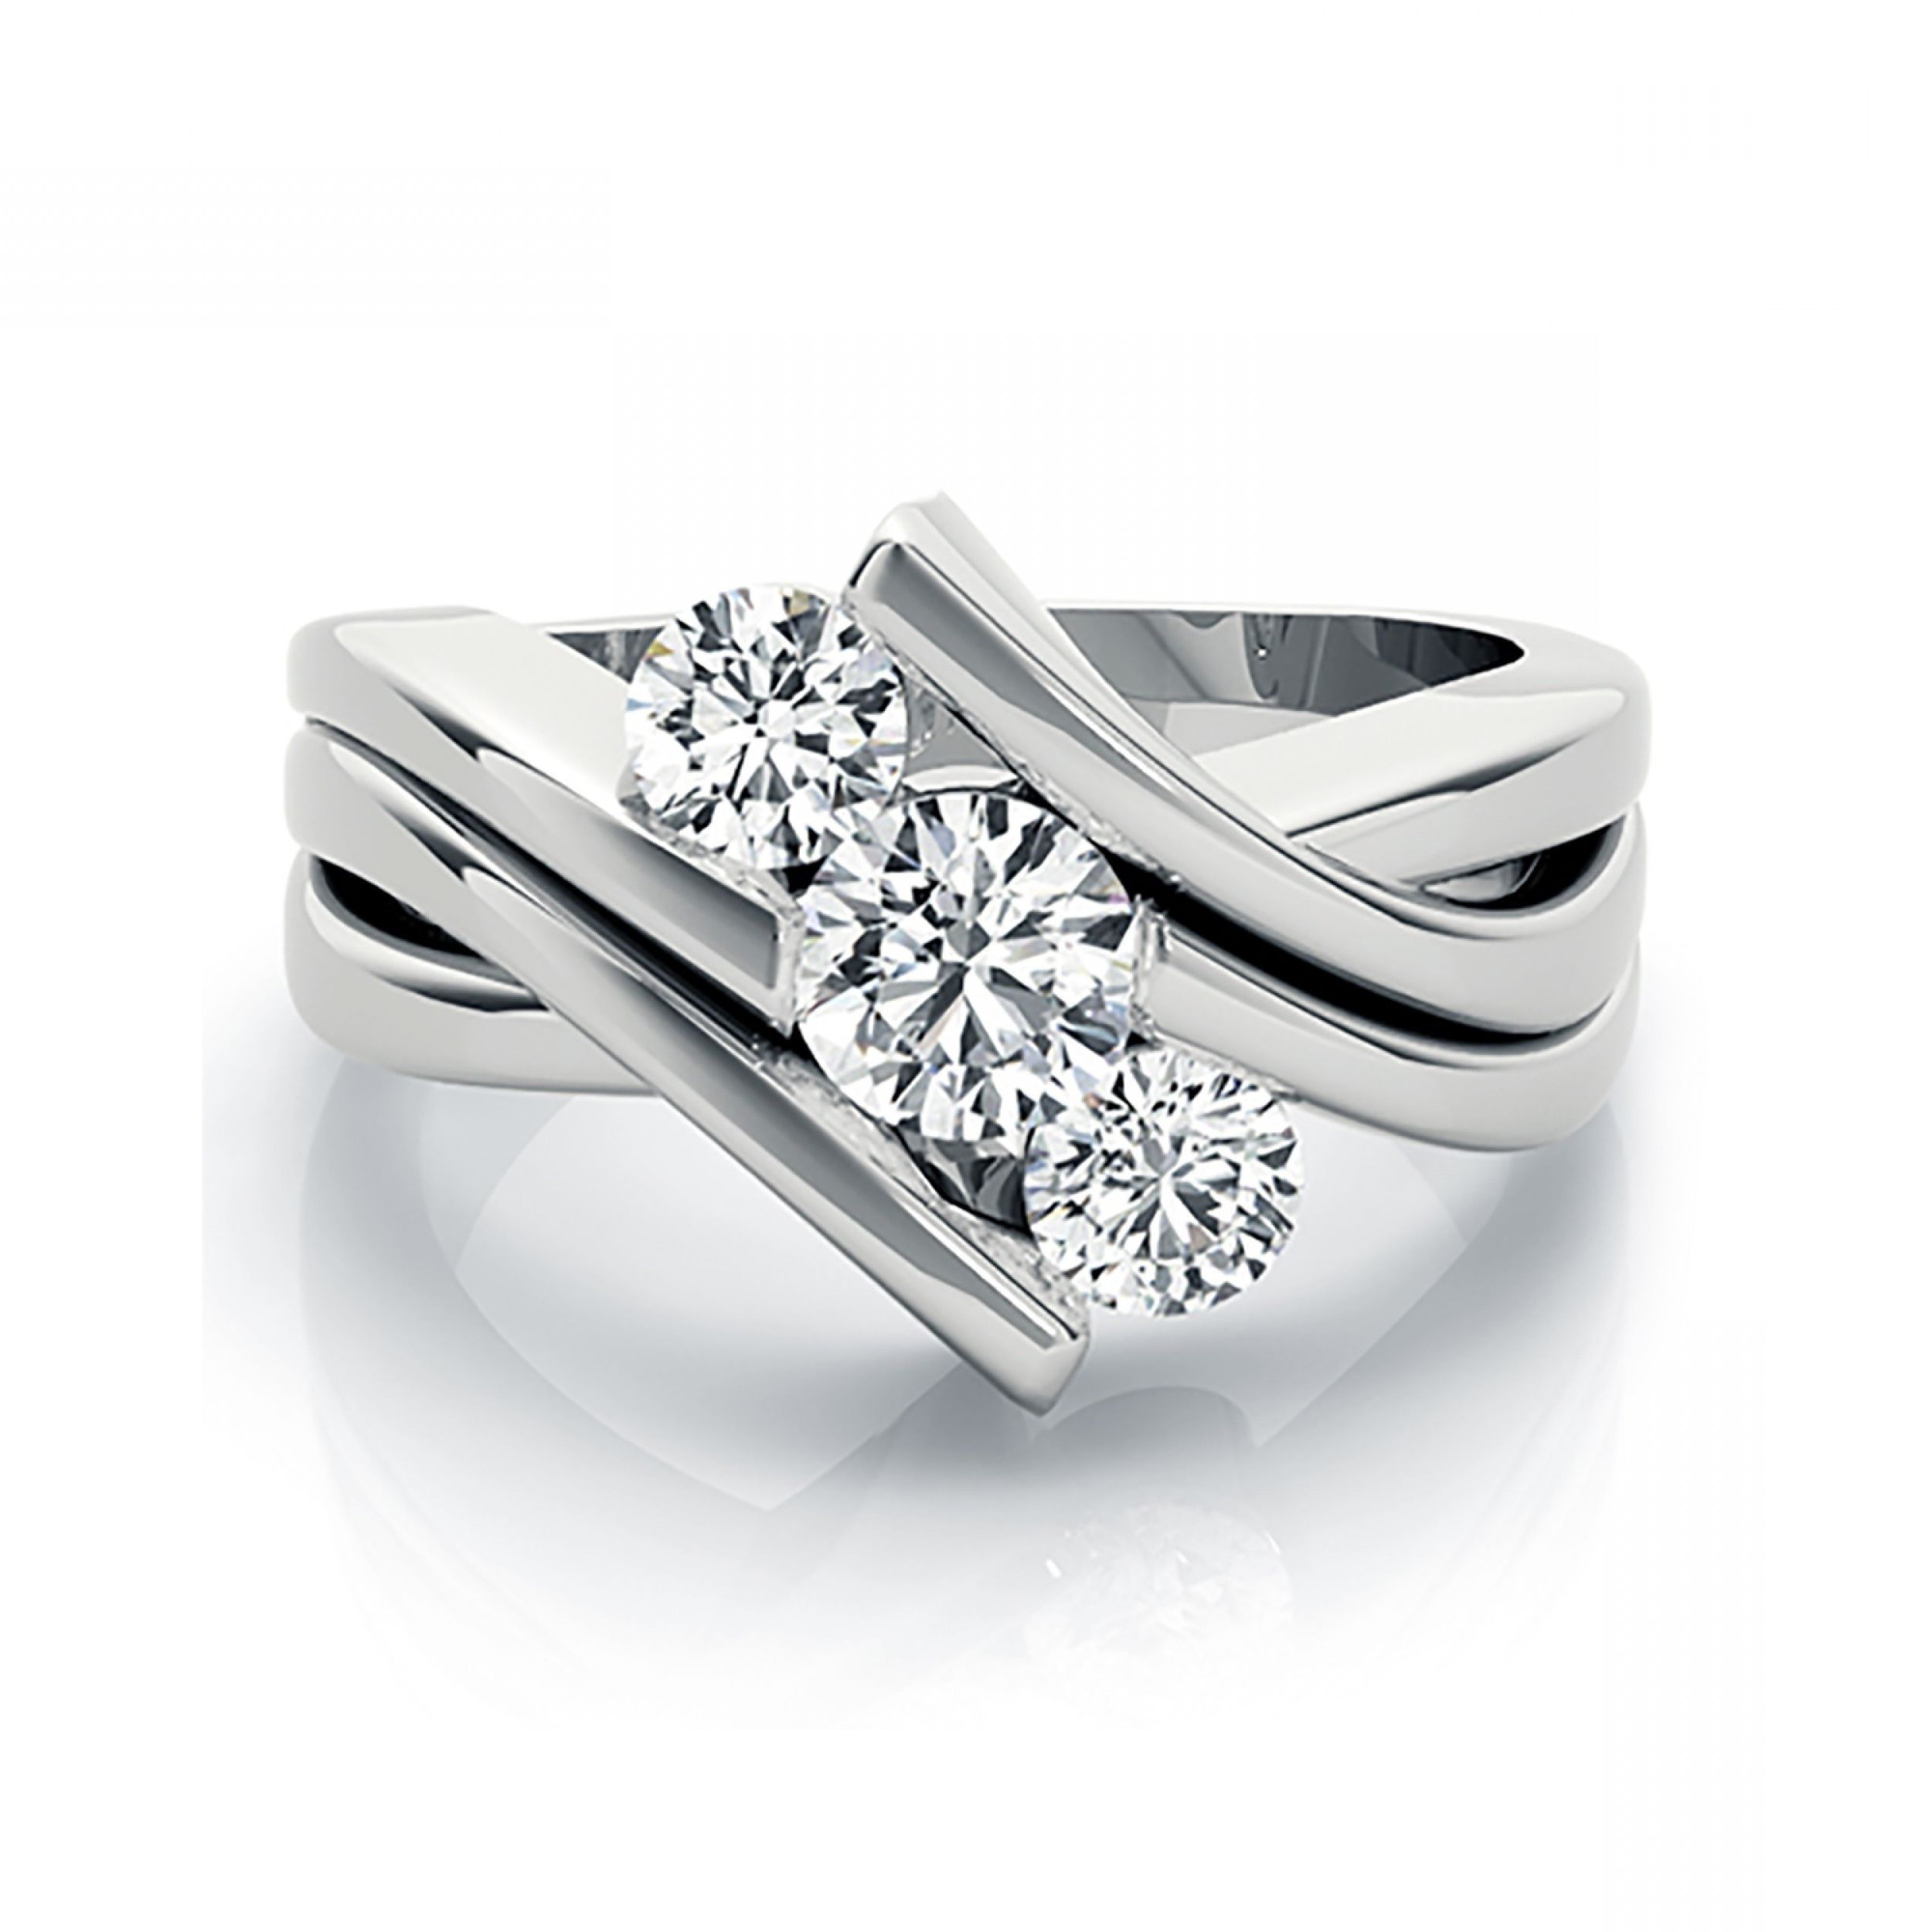 shaped in stone settings side set ring of with wg nl diamond best flush jewellery platinum marquise stones